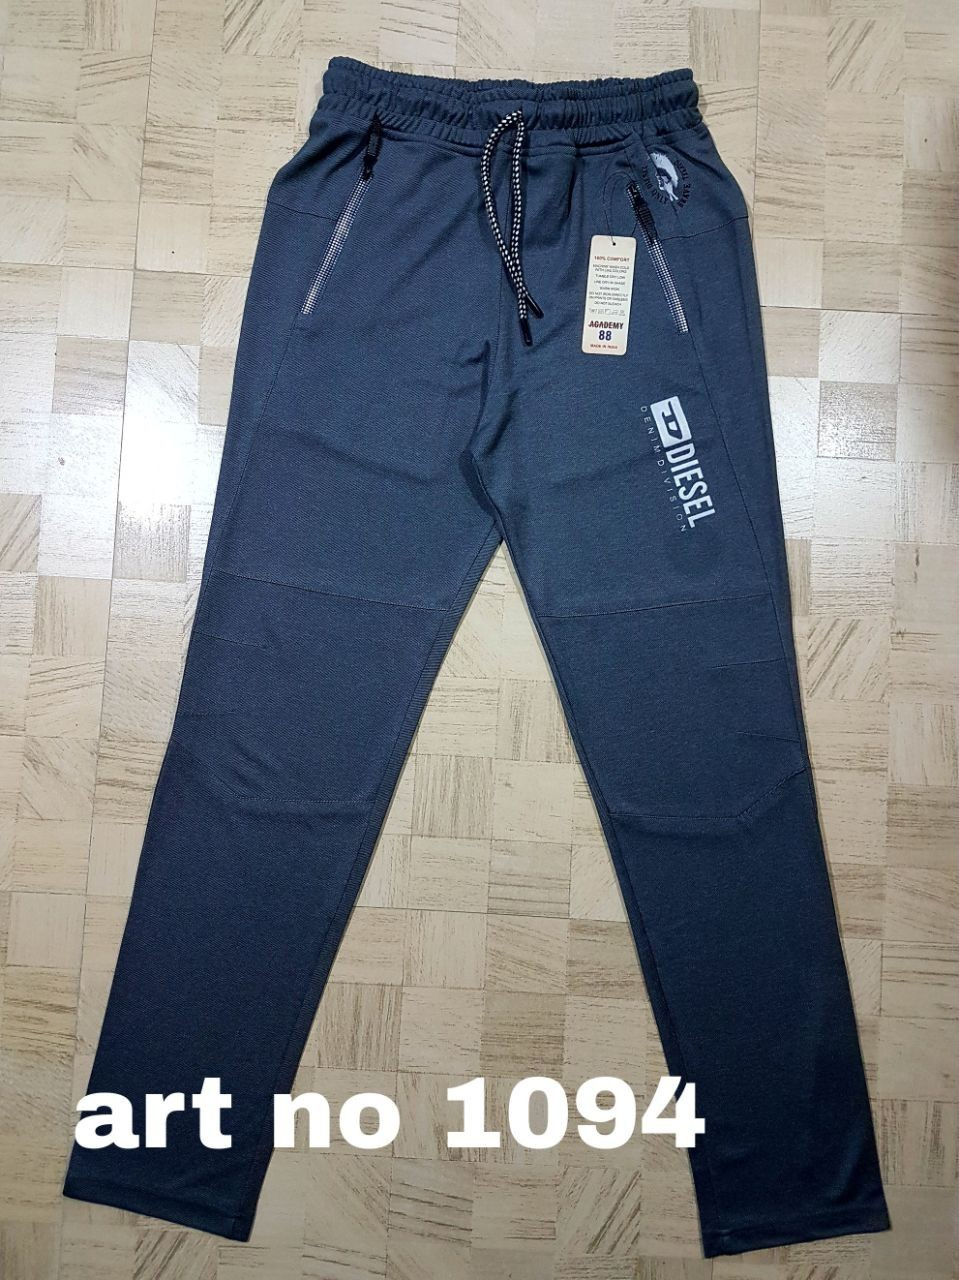 Male Gym Wear Mens Lowers, Rs 400